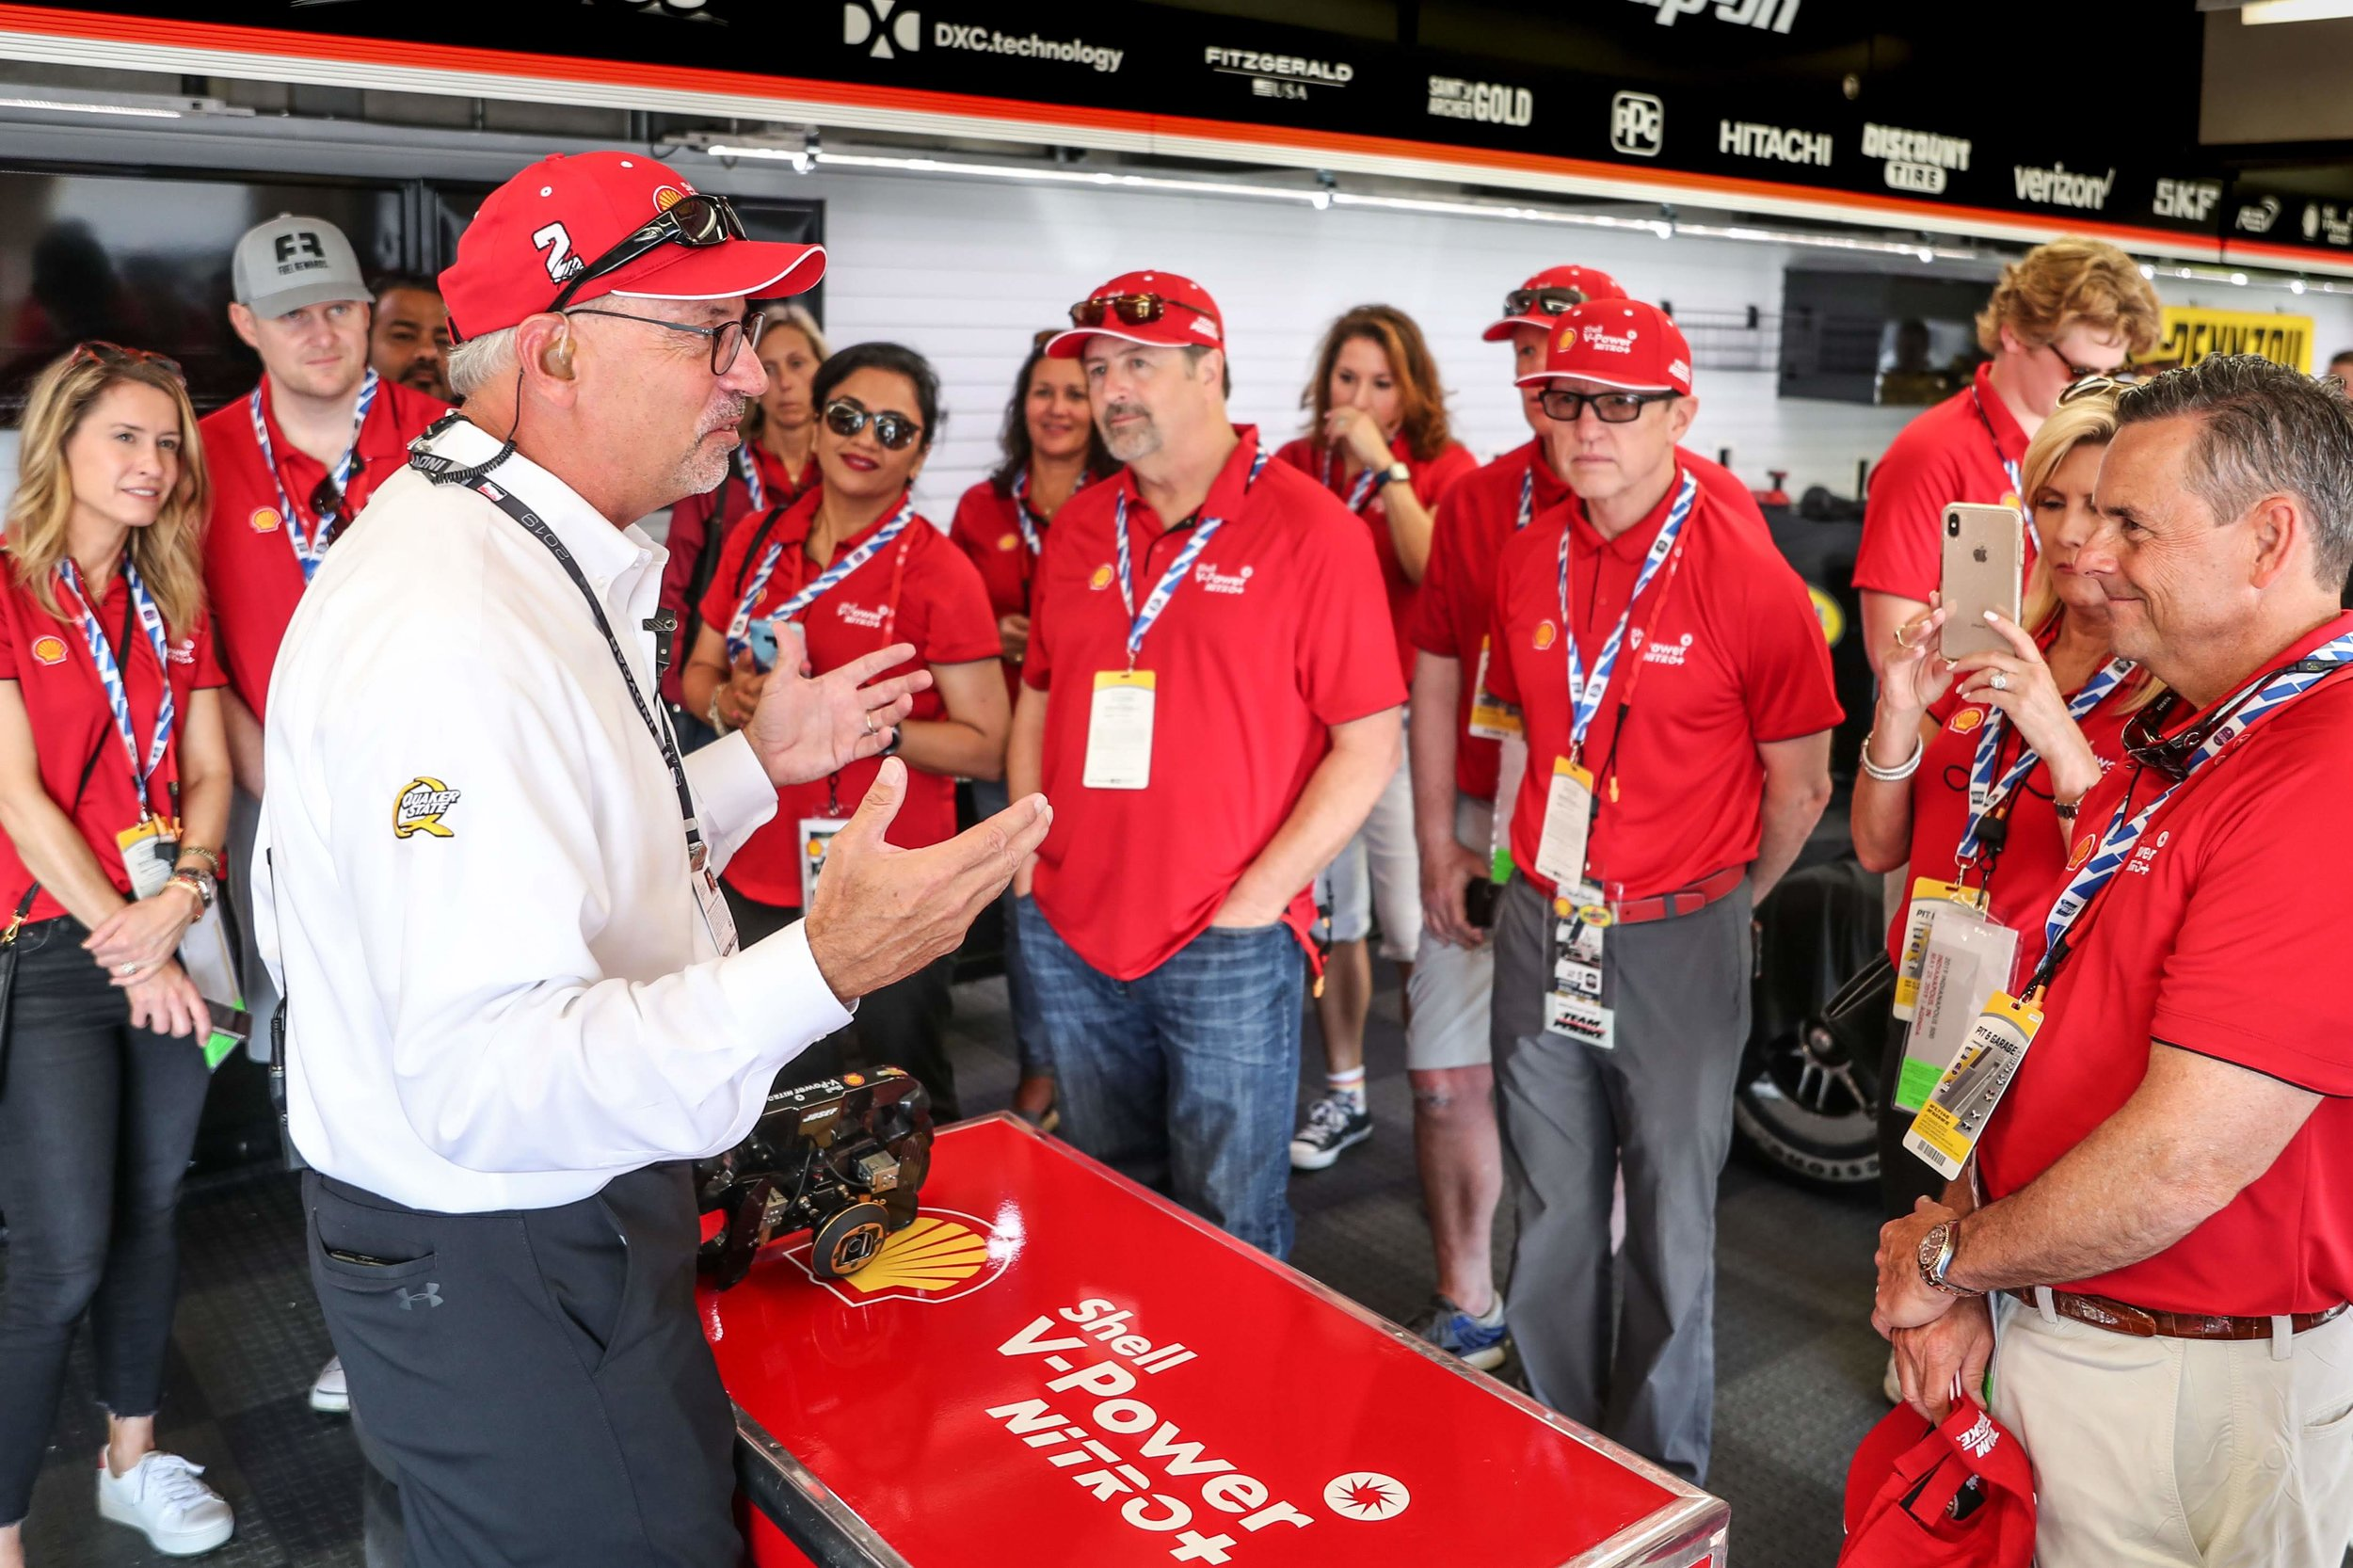 Guests go behind the scenes in the Team Penske garage ahead of the Indy 500.